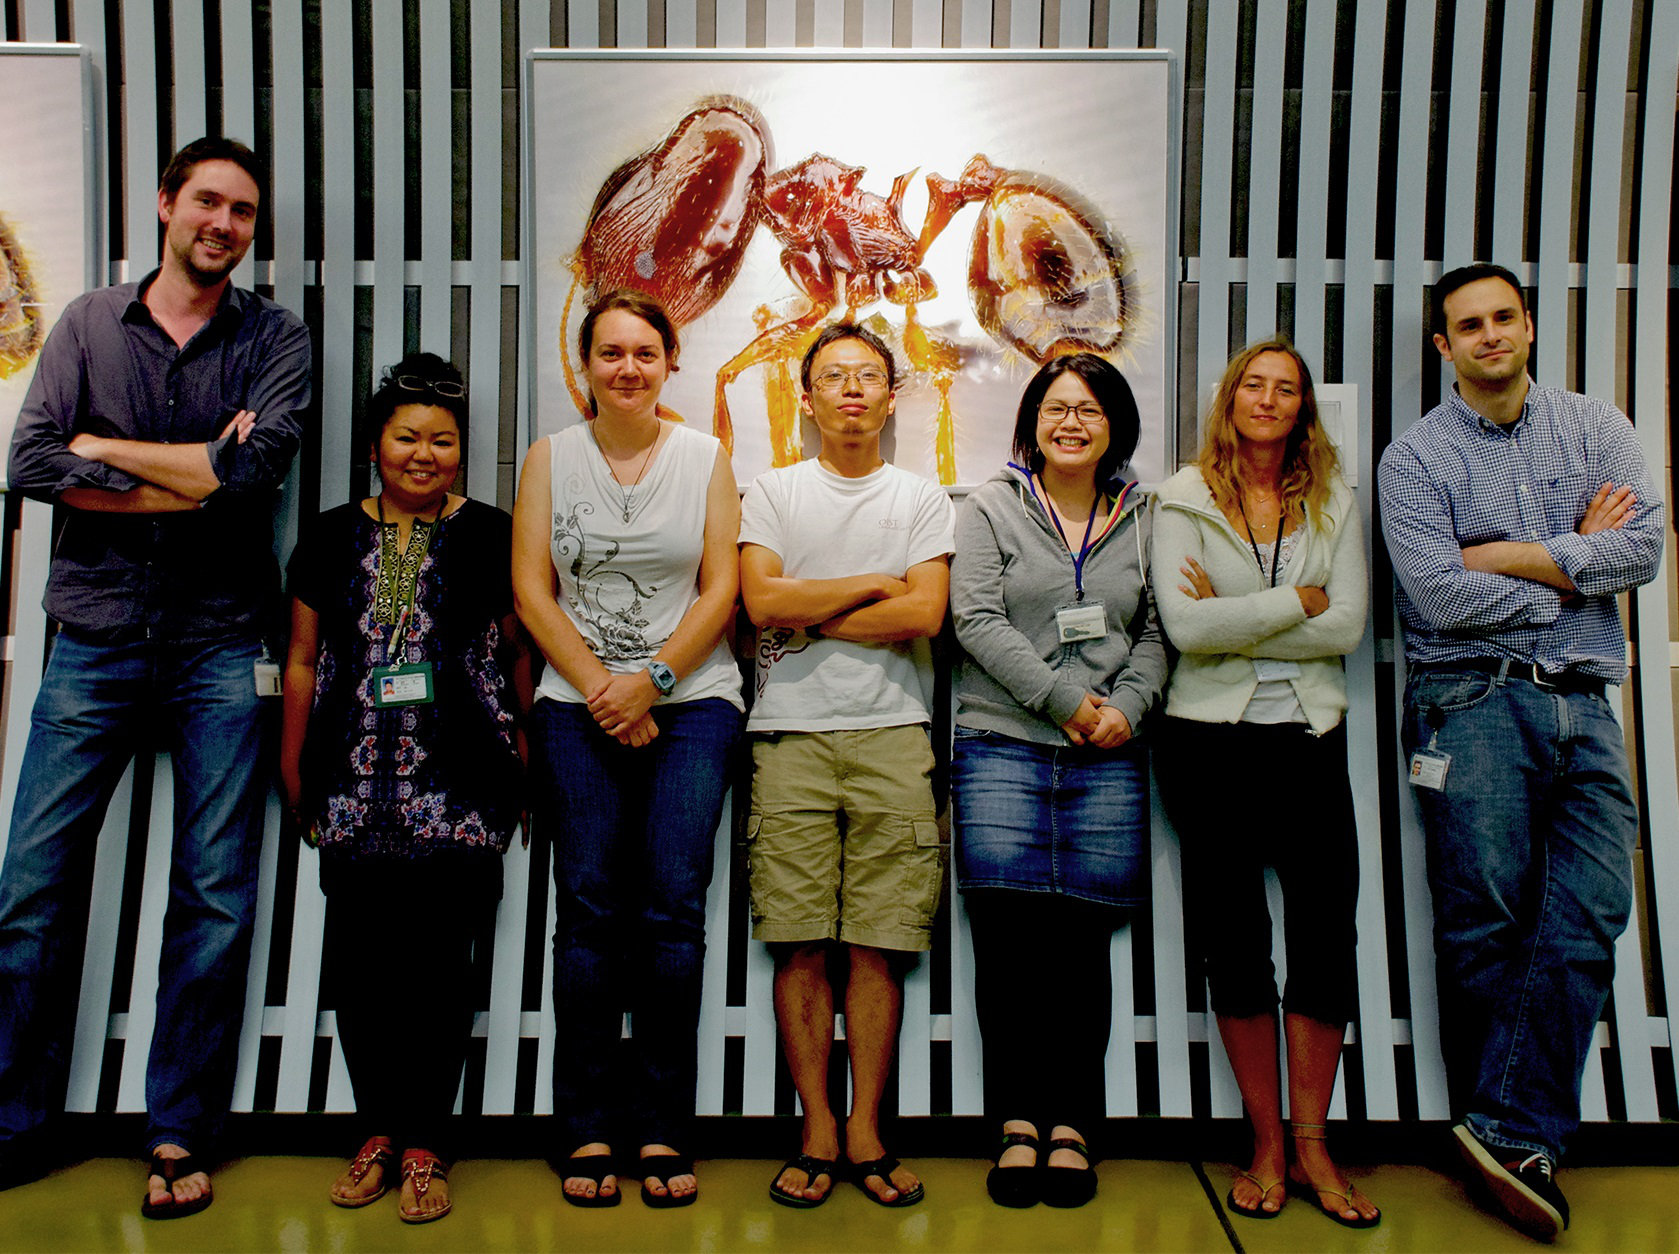 The Arilab team, posing in front of one of the posters.